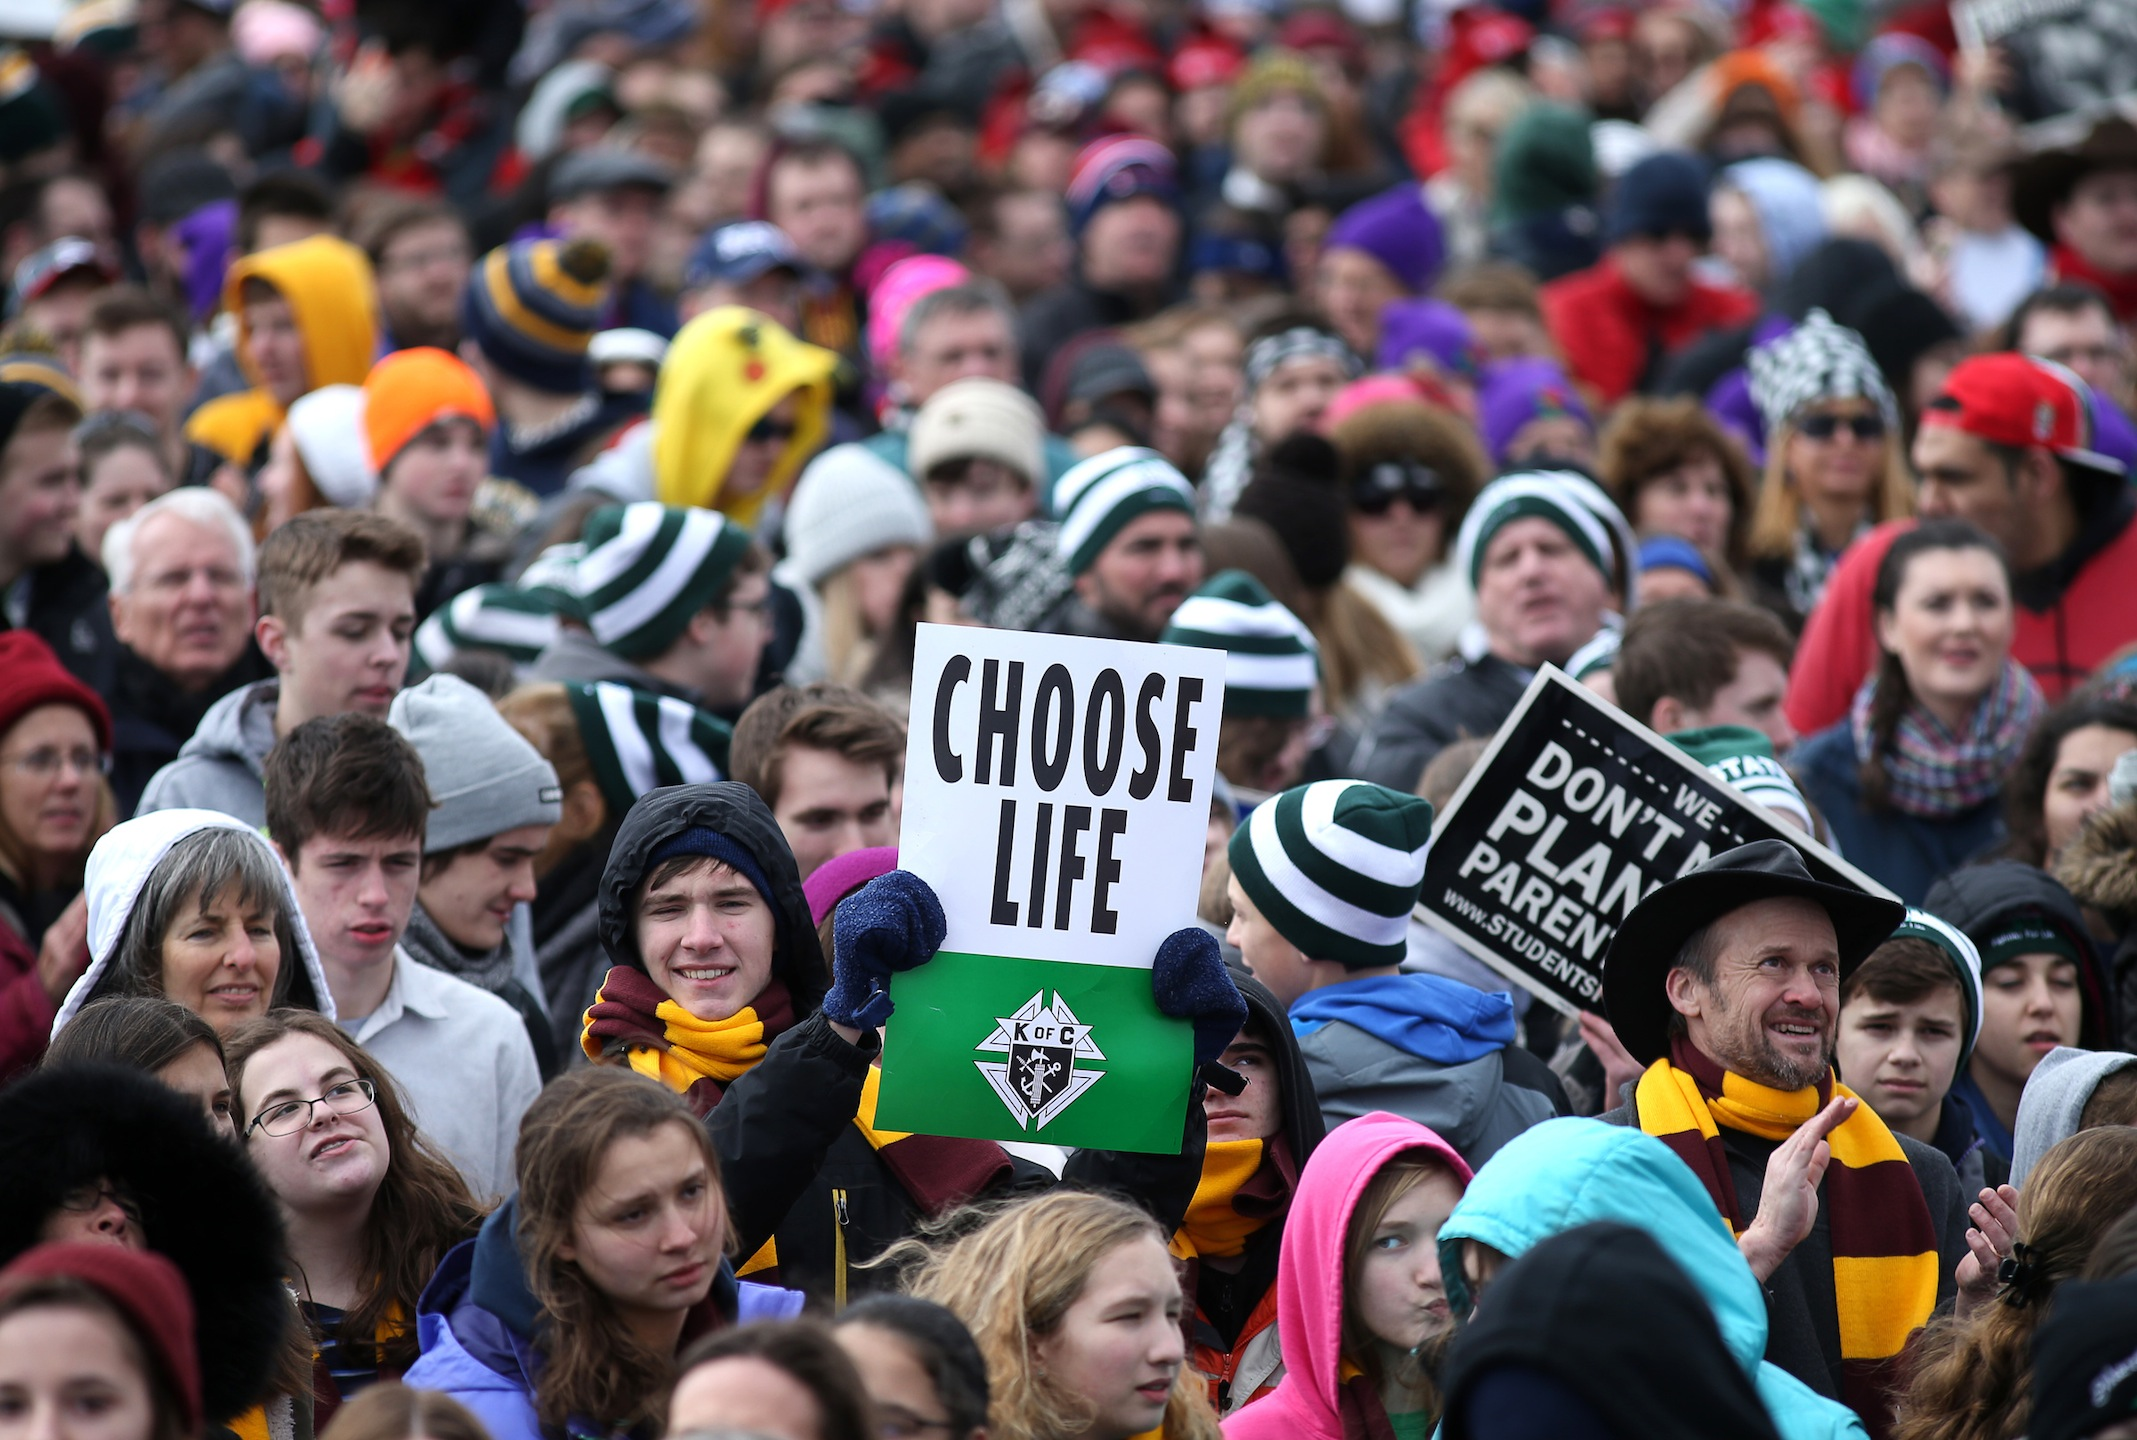 The secret behind the success of the March for Life